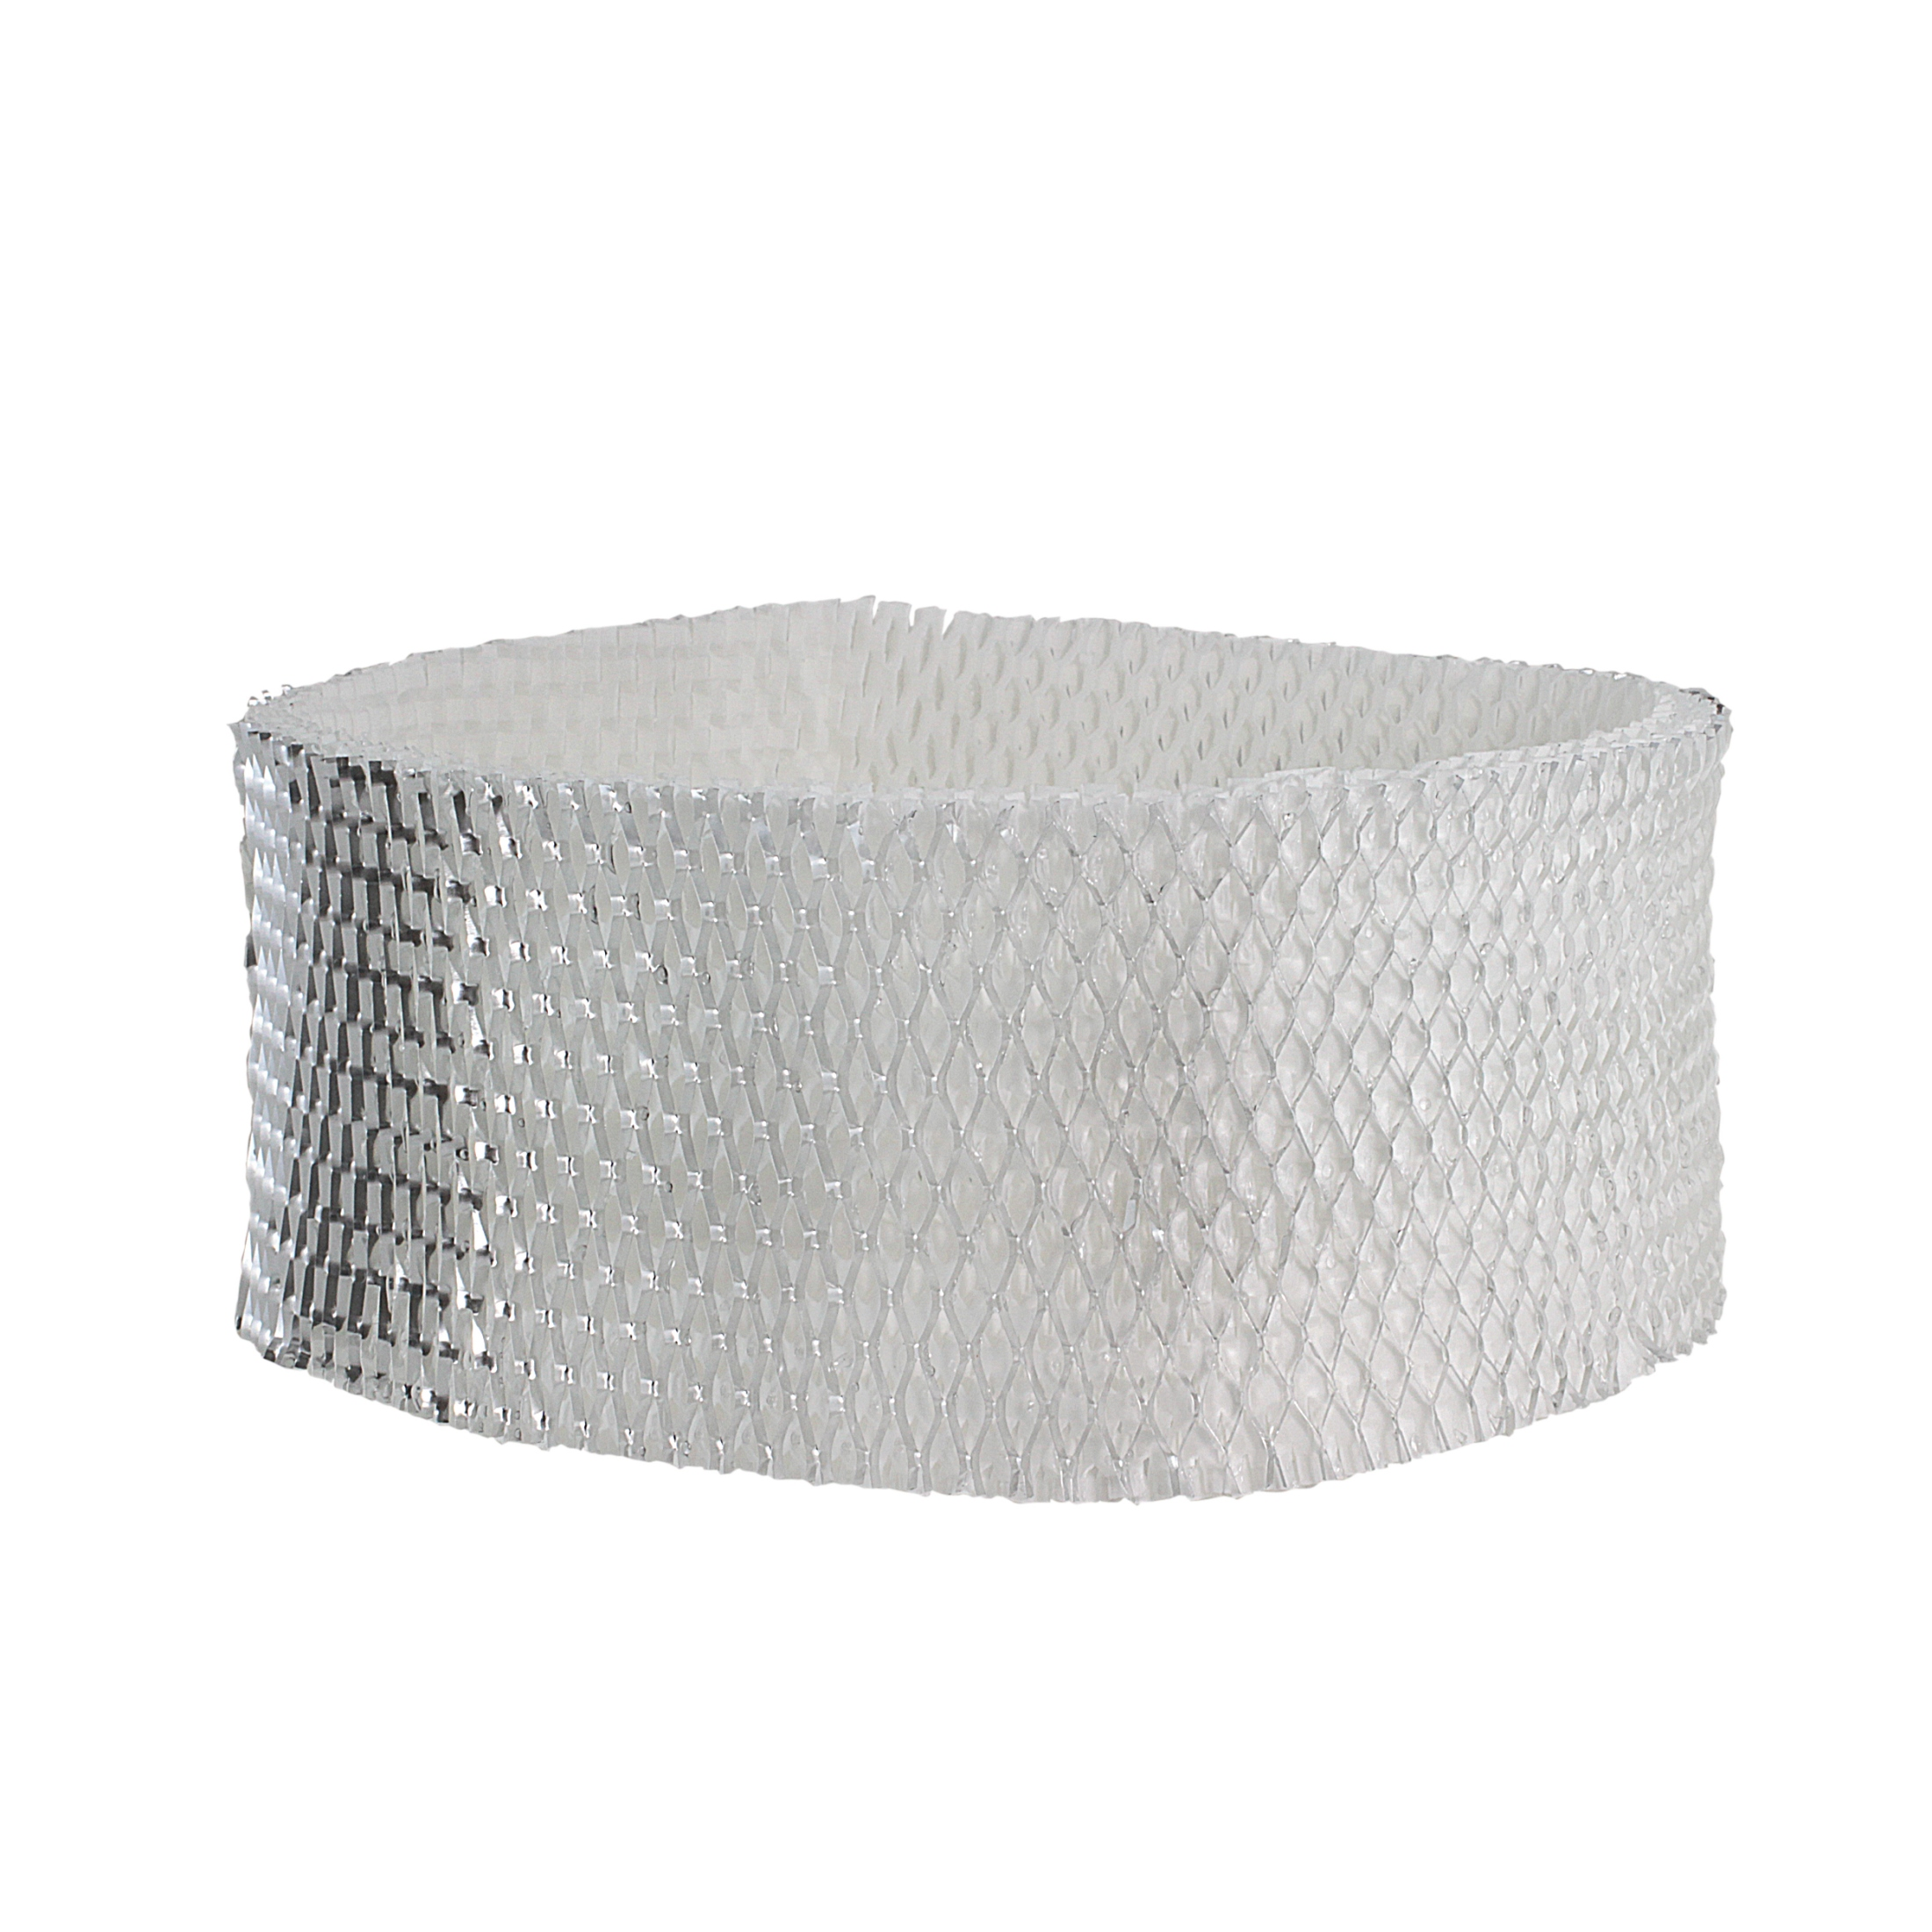 Bionaire WF2010 Humidifier Wick Replacement Filter. FilterBuy.com #575350